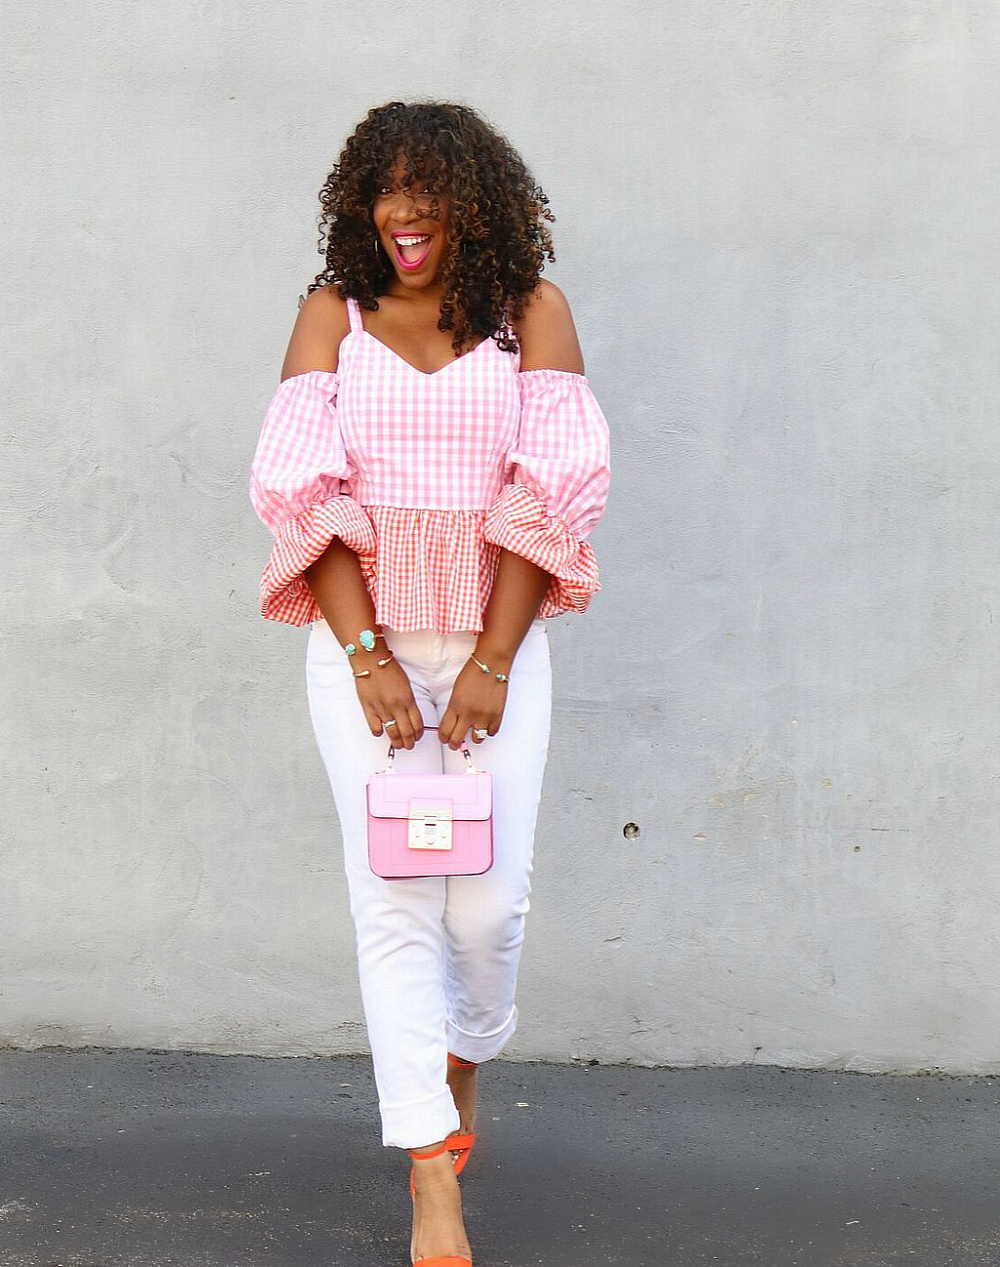 Gingham Print-Pink and Orange Top with Orange sandals